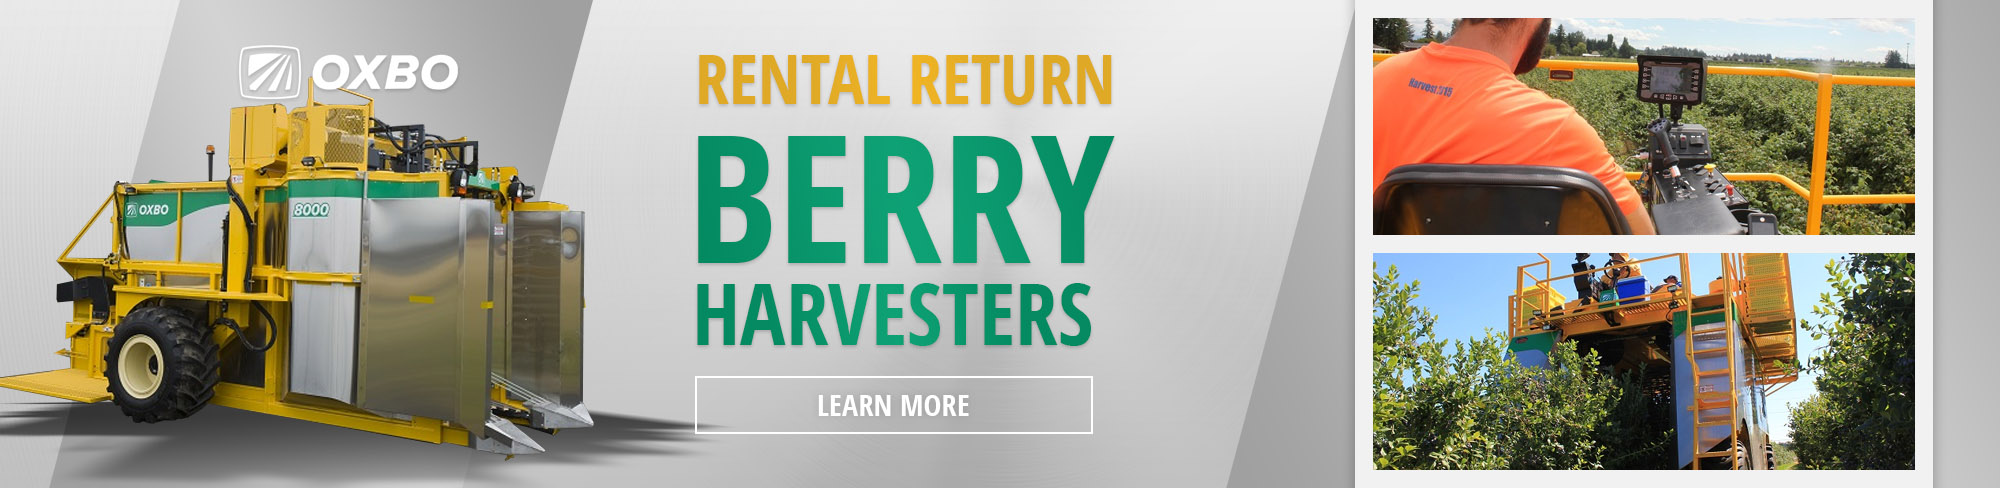 Oxbo Berry Harvester Sale at Farmers Equipment Company.